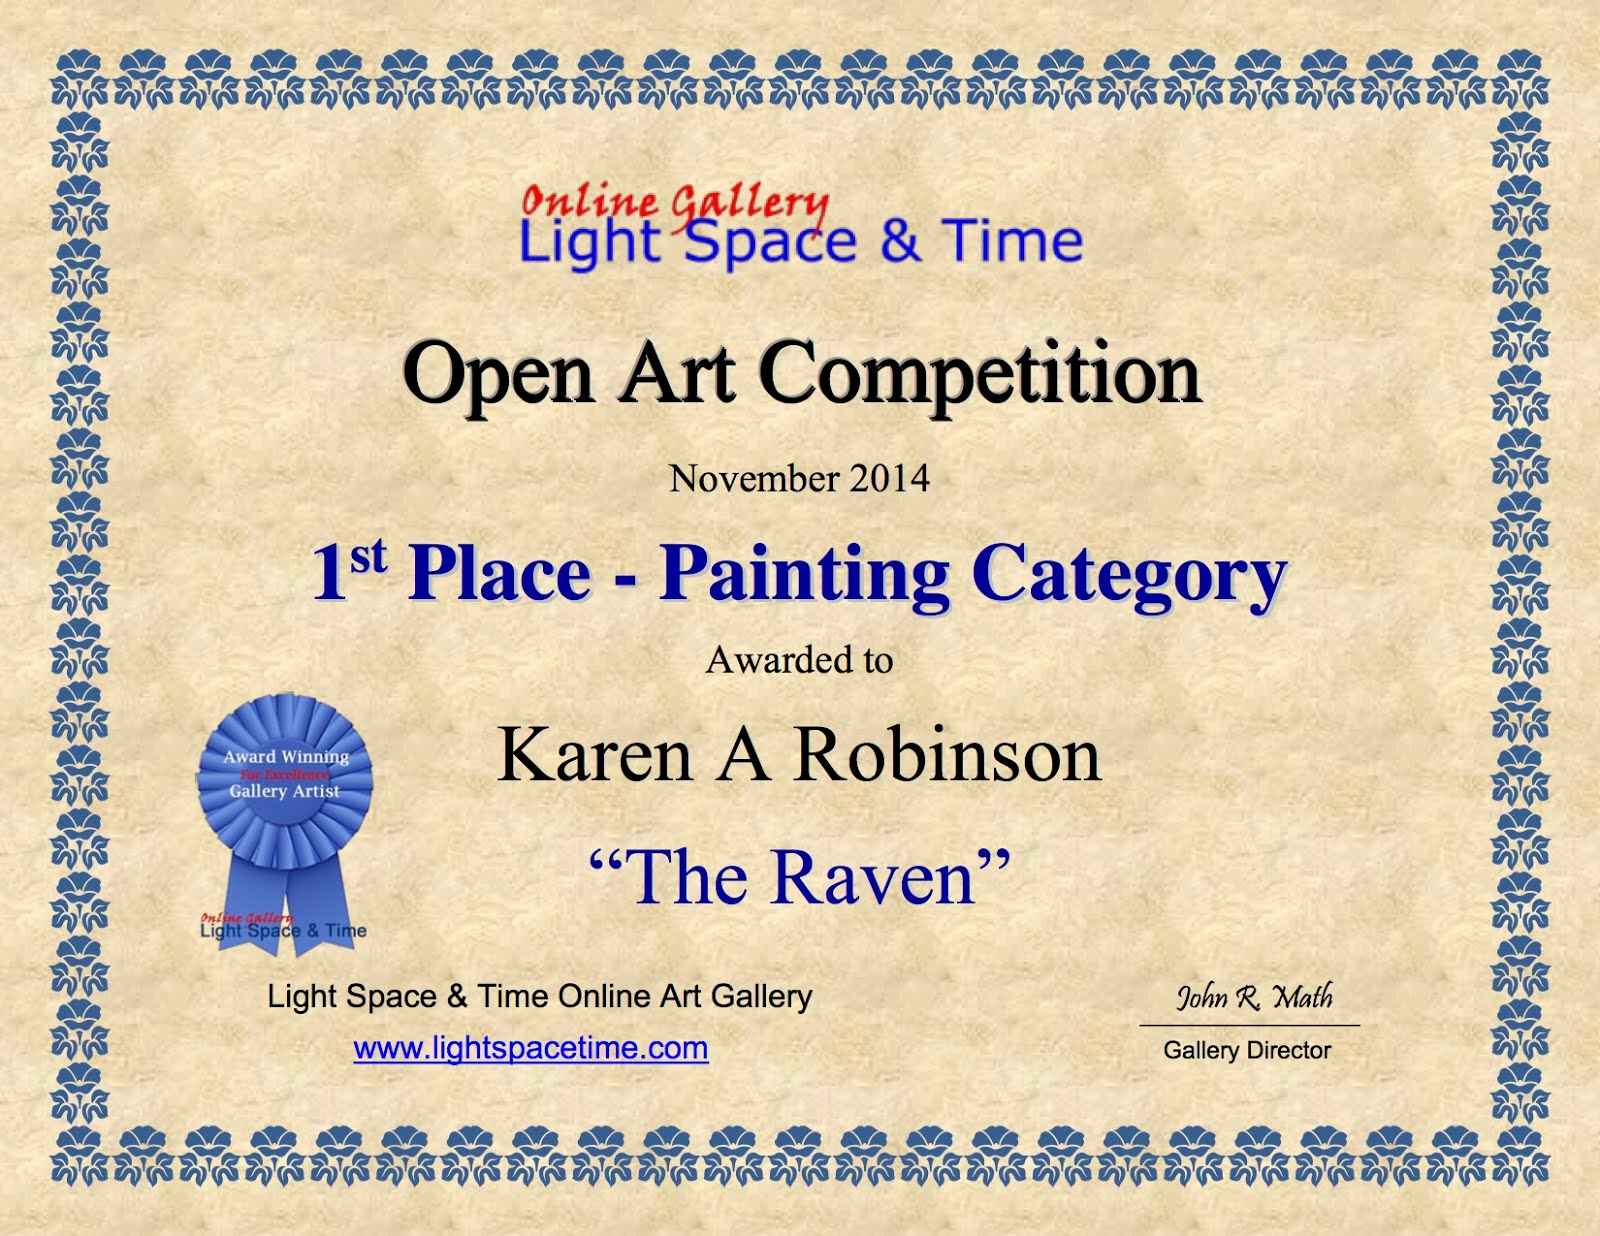 Open Art Competition 2014